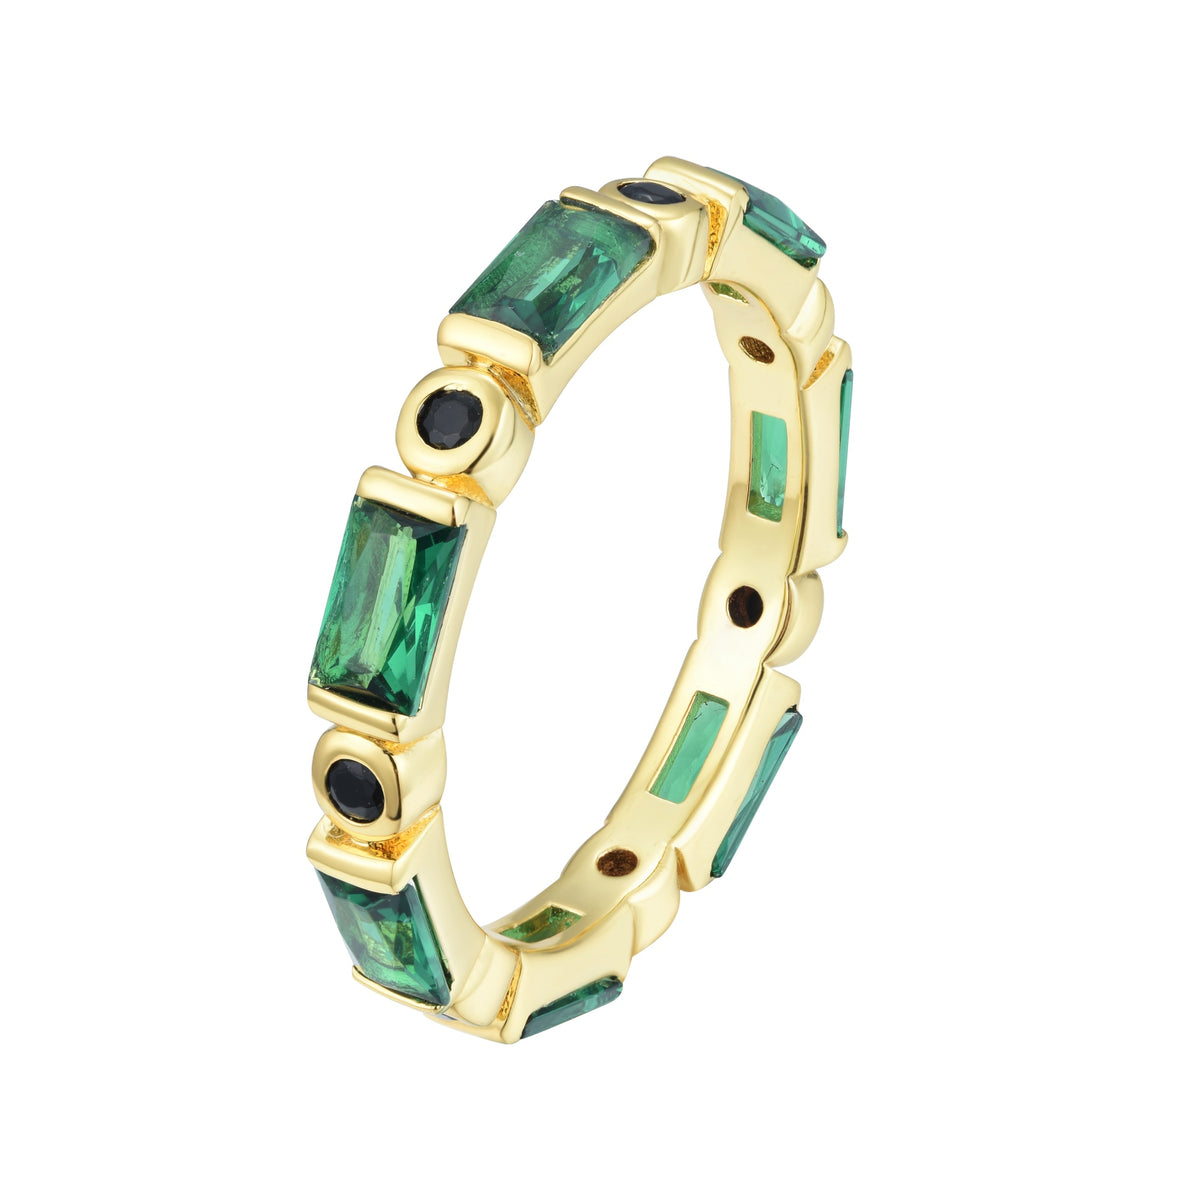 Ferentina | Banoffee Ring | 925 Silver | Black & Green CZ | 18K Gold Plated